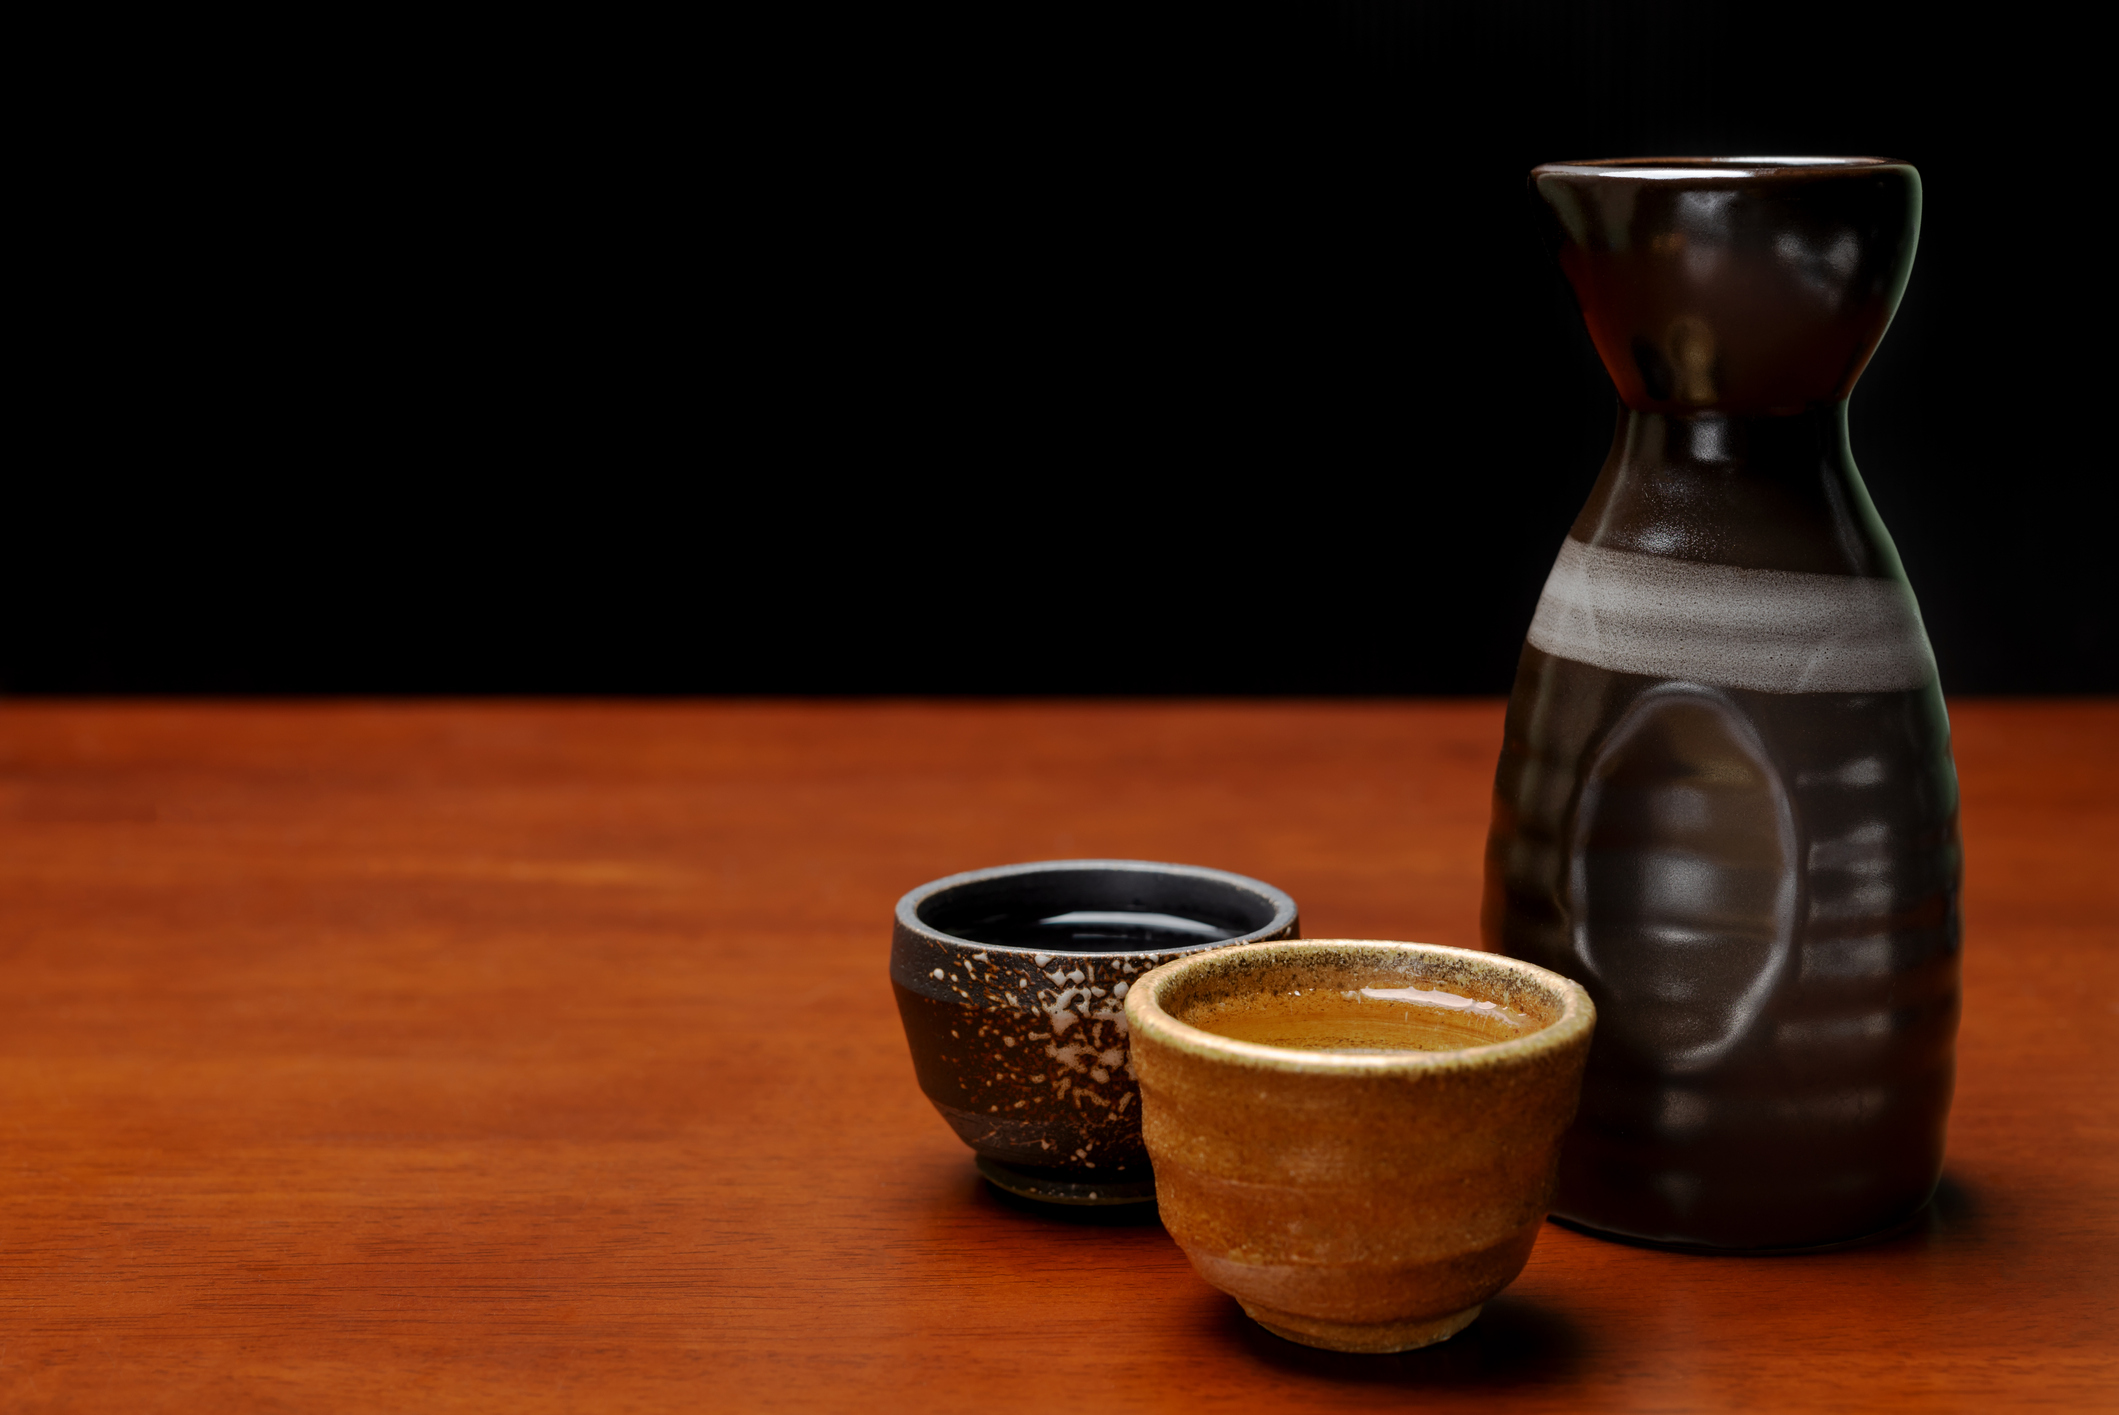 many sake cup and bottle with copy space